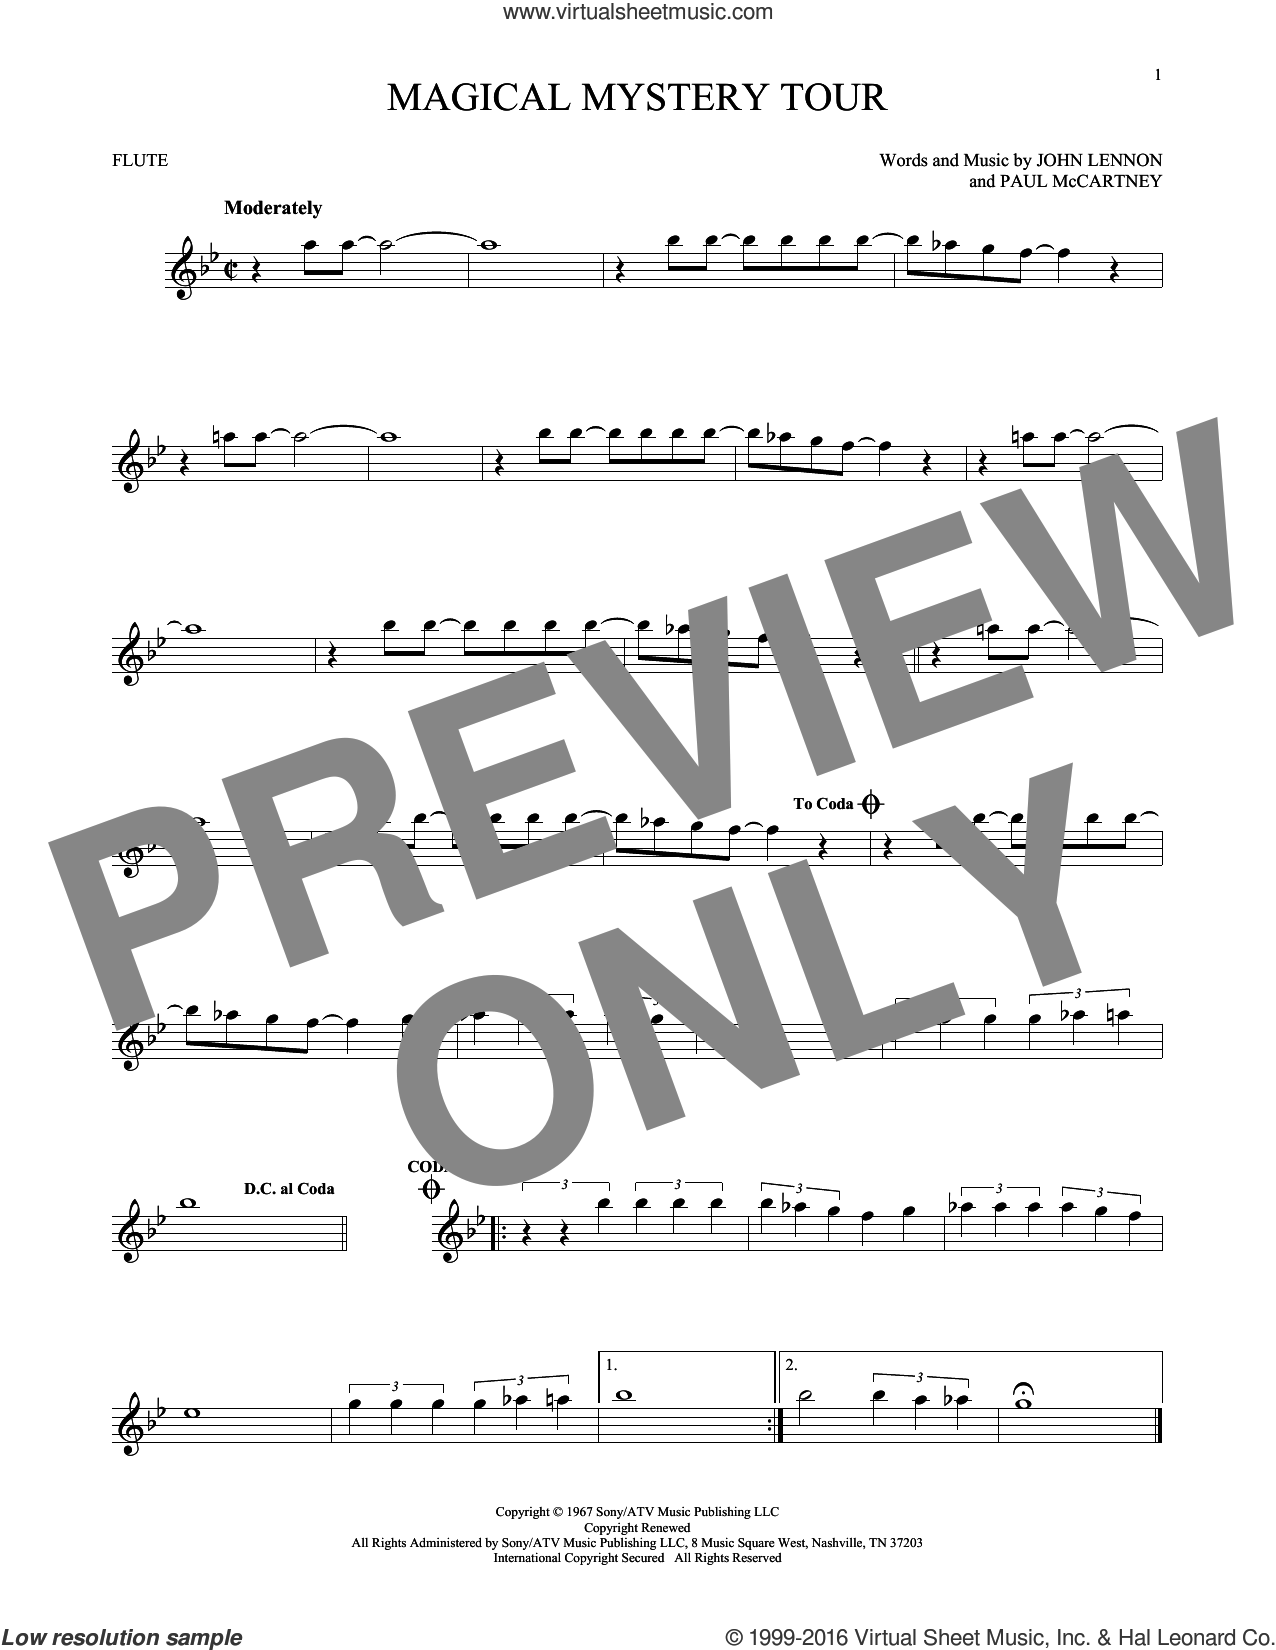 Magical Mystery Tour sheet music for flute solo by The Beatles, John Lennon and Paul McCartney, intermediate